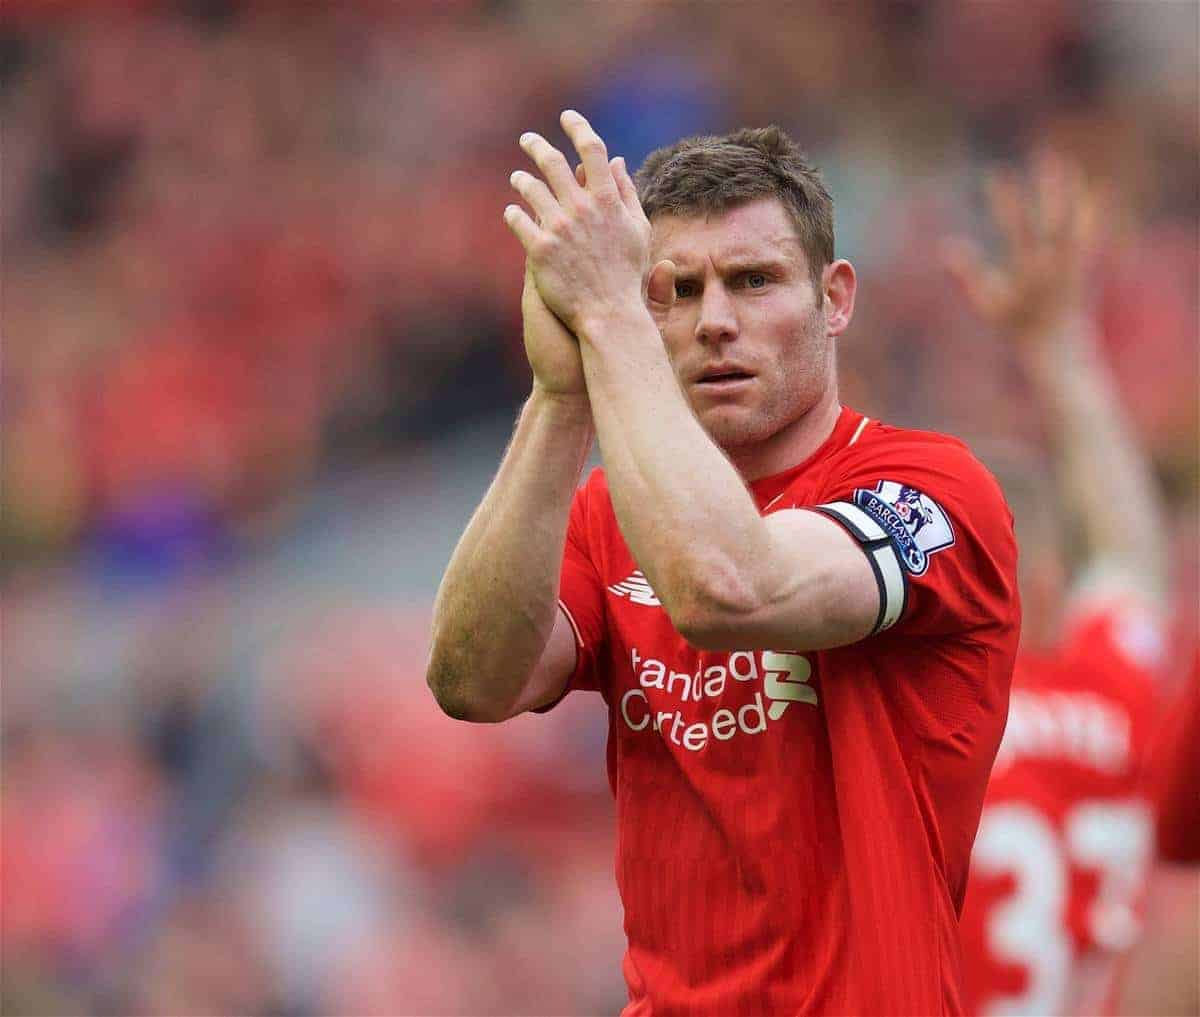 LIVERPOOL, ENGLAND - Sunday, April 10, 2016: Liverpool's James Milner applauds the supporters after the 4-1 victory over Stoke City during the Premier League match at Anfield. (Pic by David Rawcliffe/Propaganda)